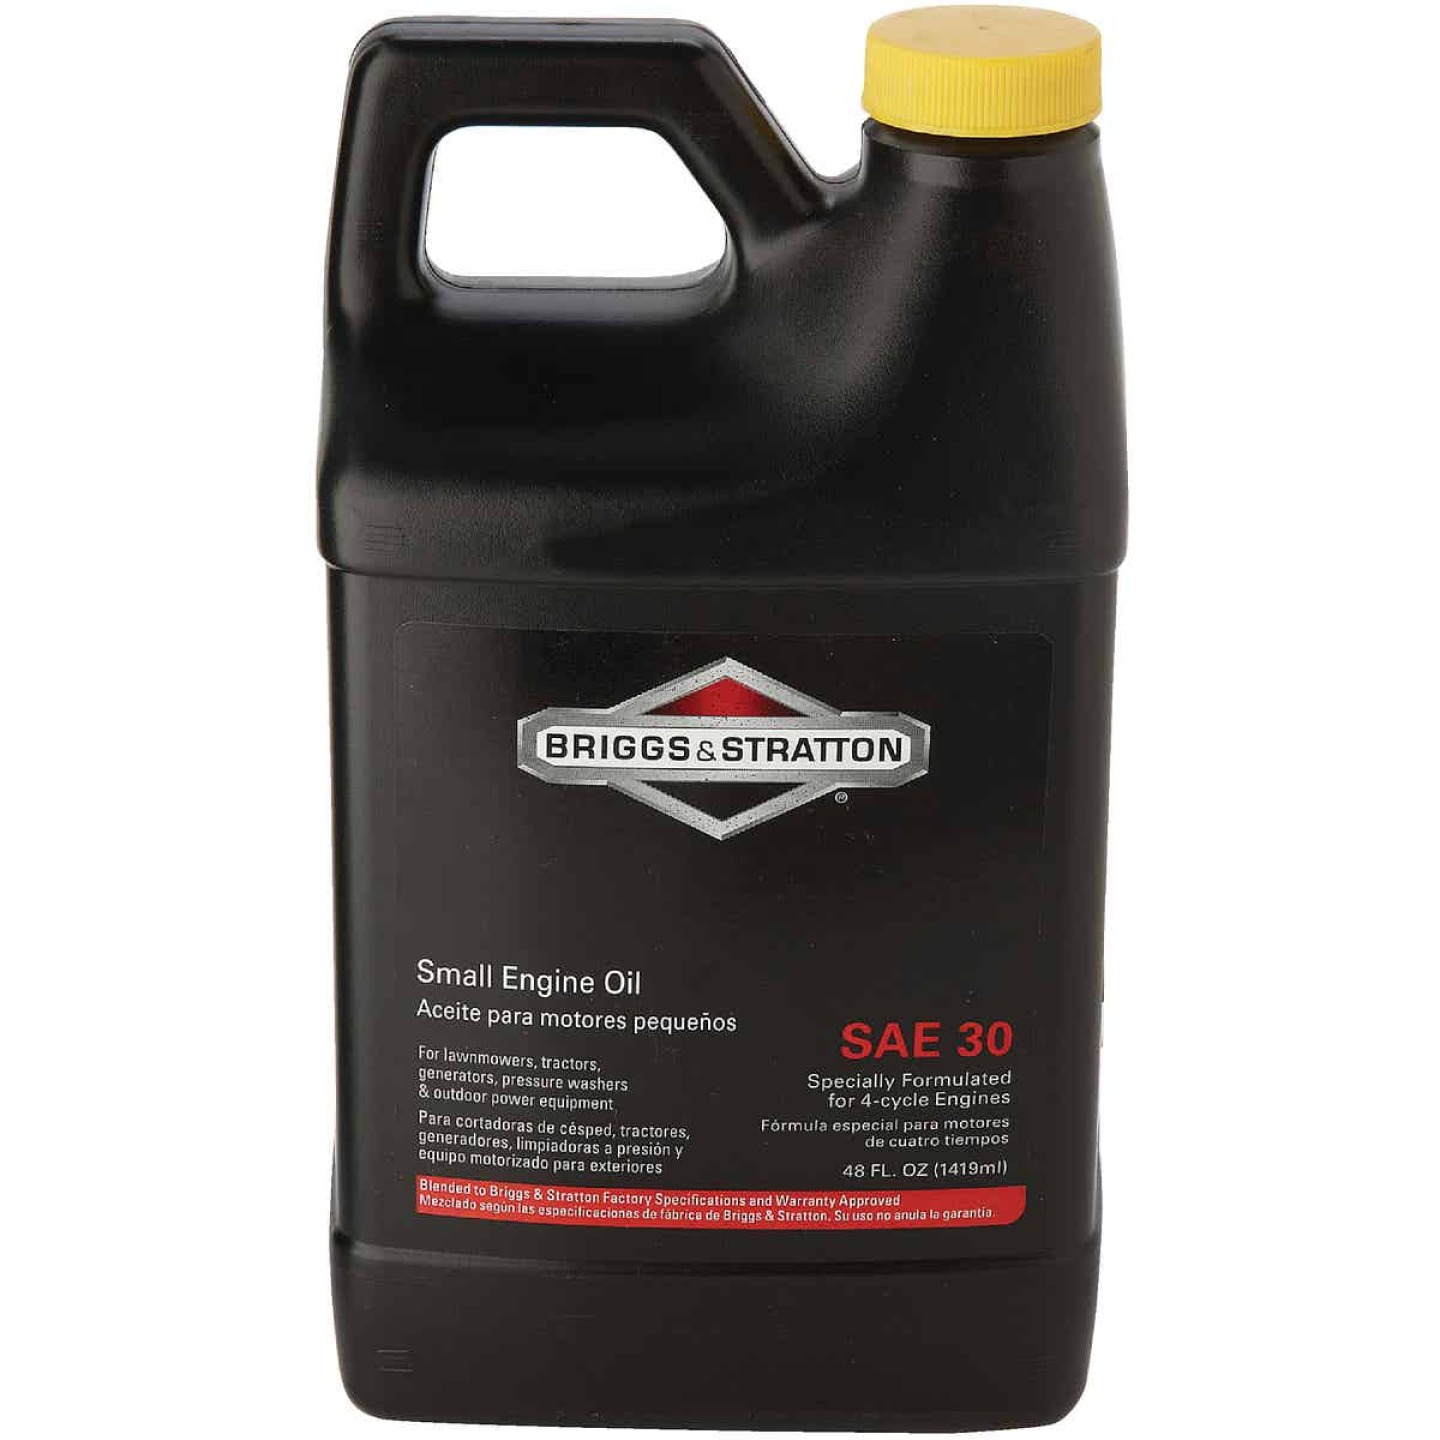 Briggs & Stratton 30W 48 oz 4-Cycle Motor Oil Image 3